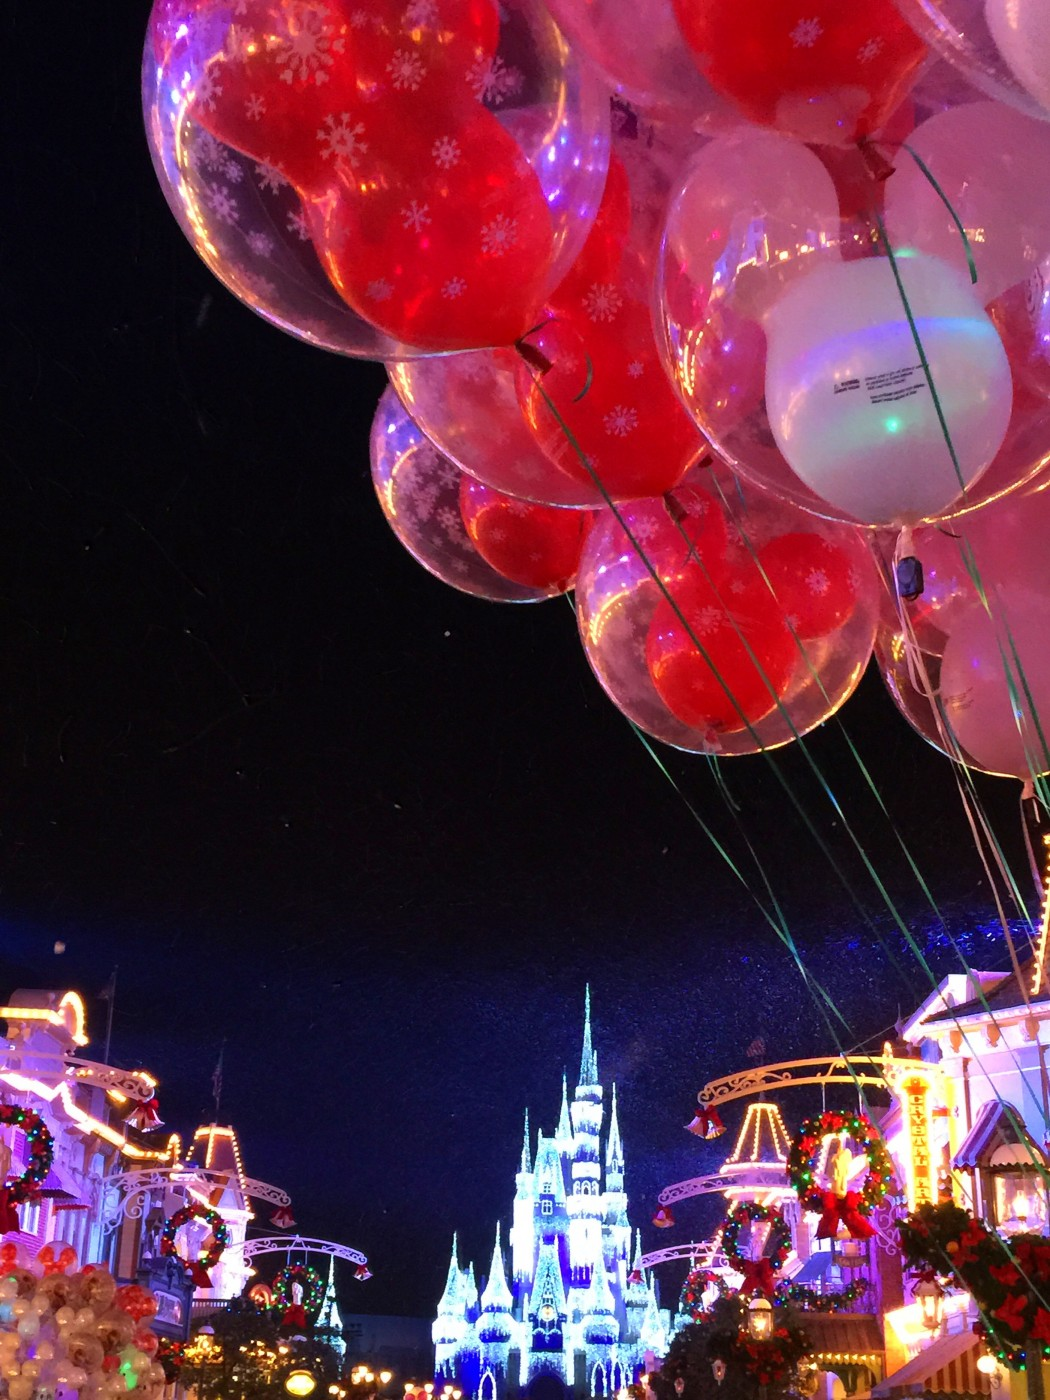 mickeys very merry christmas party in the magic kingdom at walt disney world